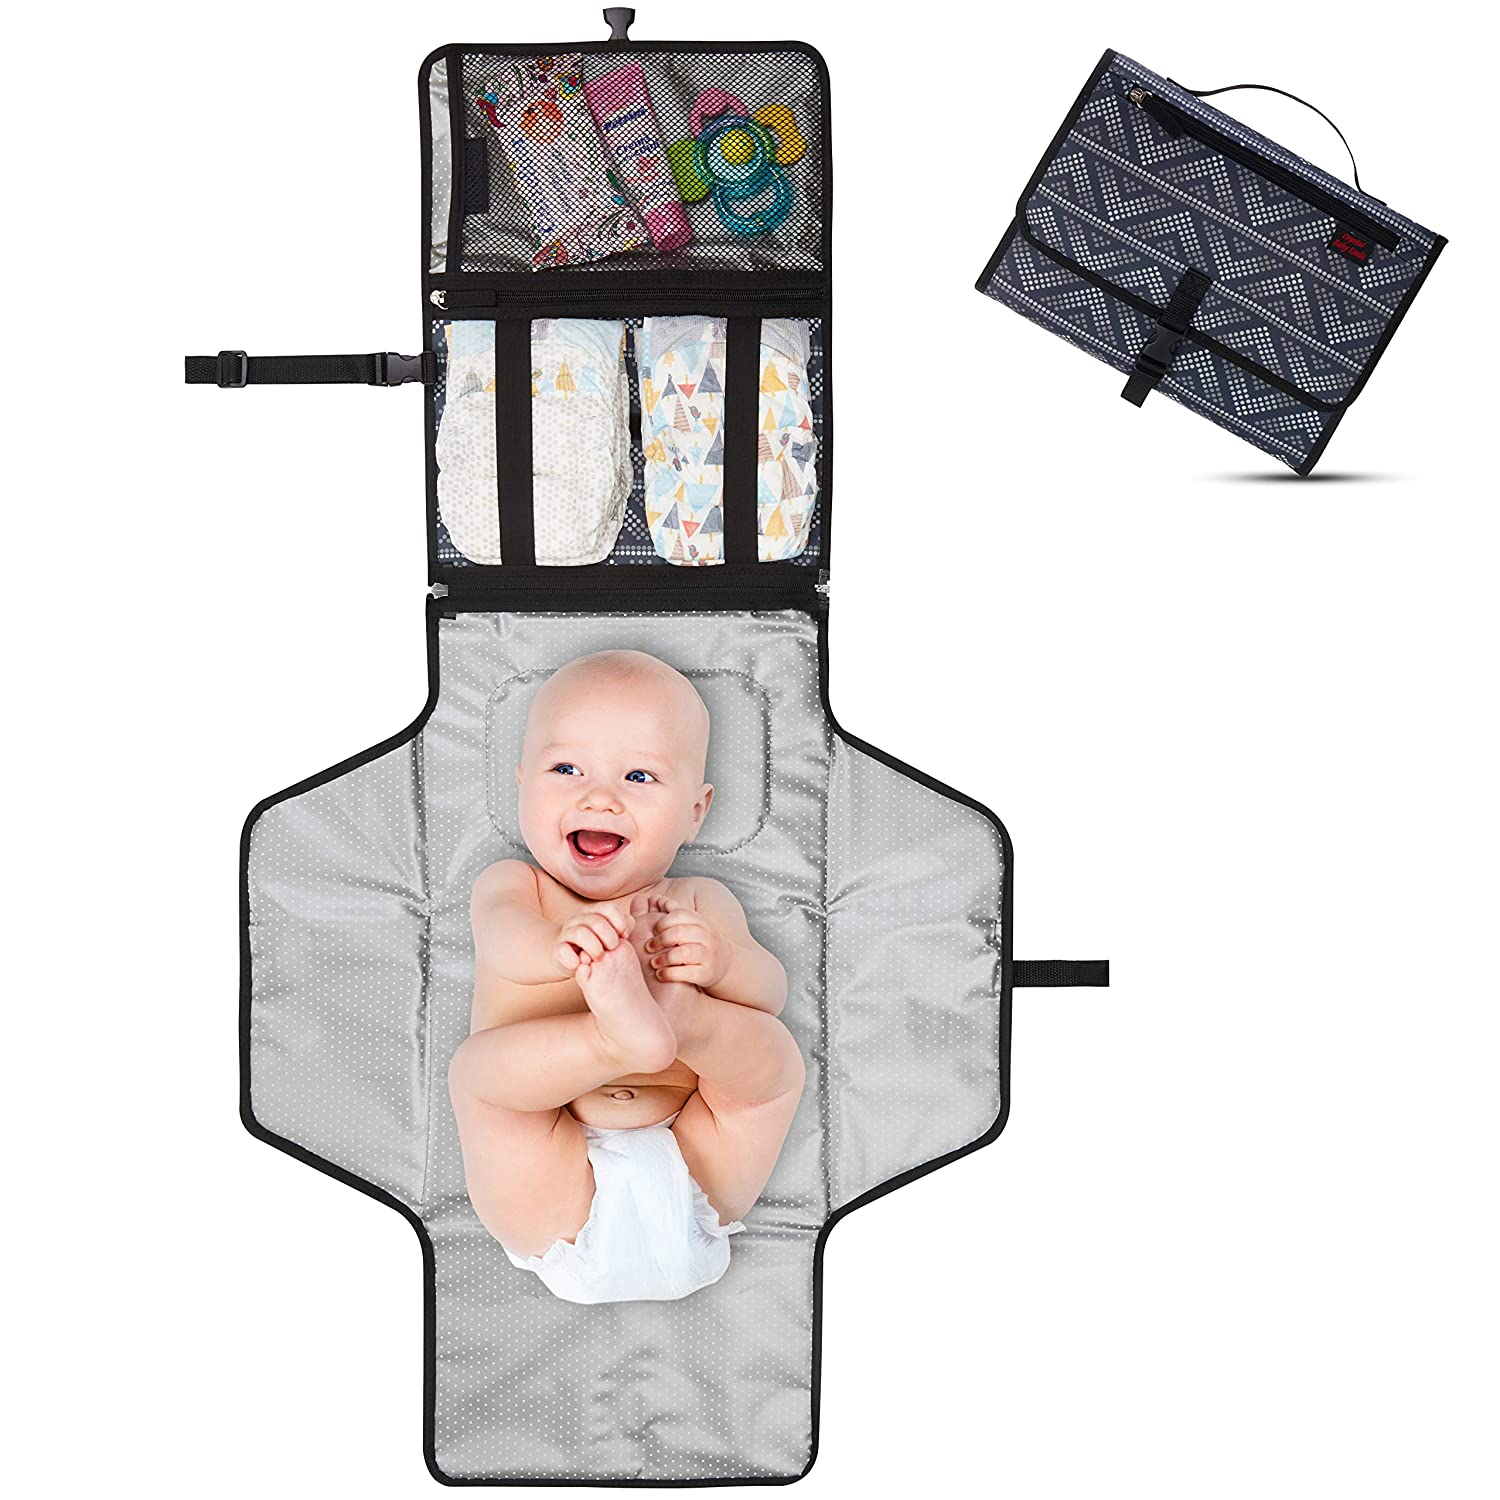 Crystal Baby Smile - Portable Changing Pad - Travel Station - Diaper Baby Clutch Kit - Detachable, Wipeable Mat - Mesh and Zippered Pockets - Gray Dots